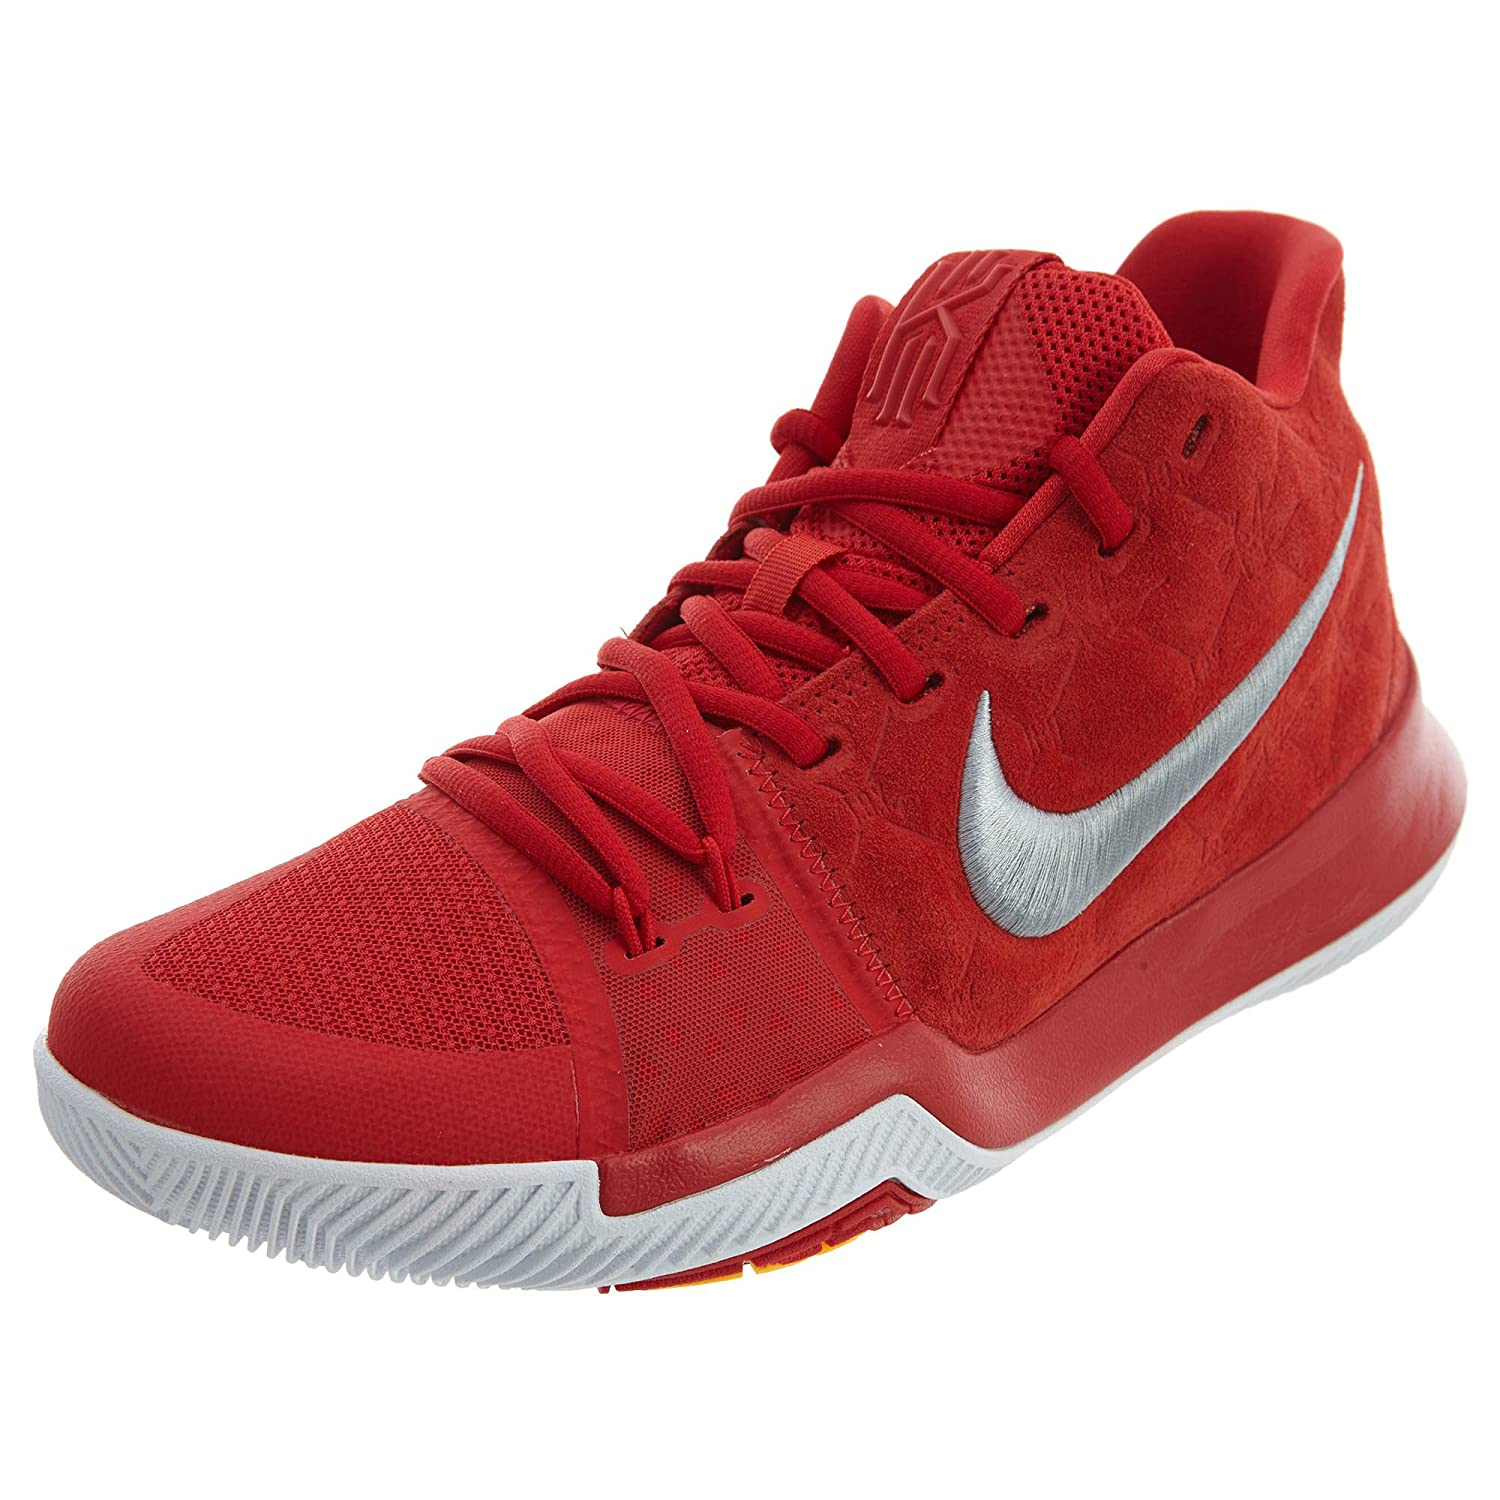 NIKE Kyrie 3 Mens Basketball Shoes B076ZR184M 9 D(M) US|Red